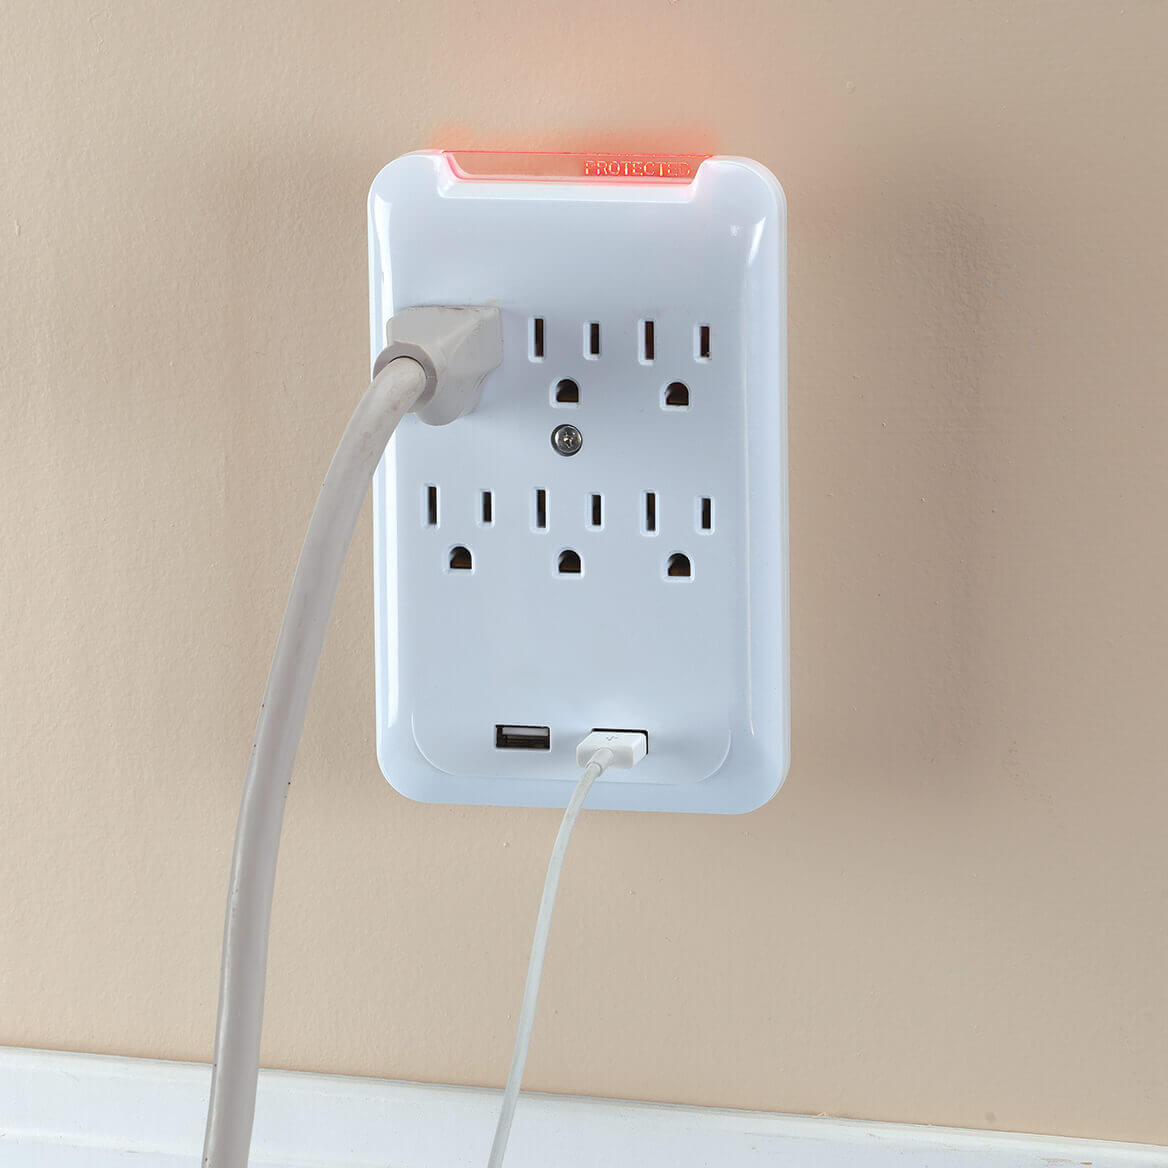 6-Outlet 2-USB Surge Protector Wall Tap-370713